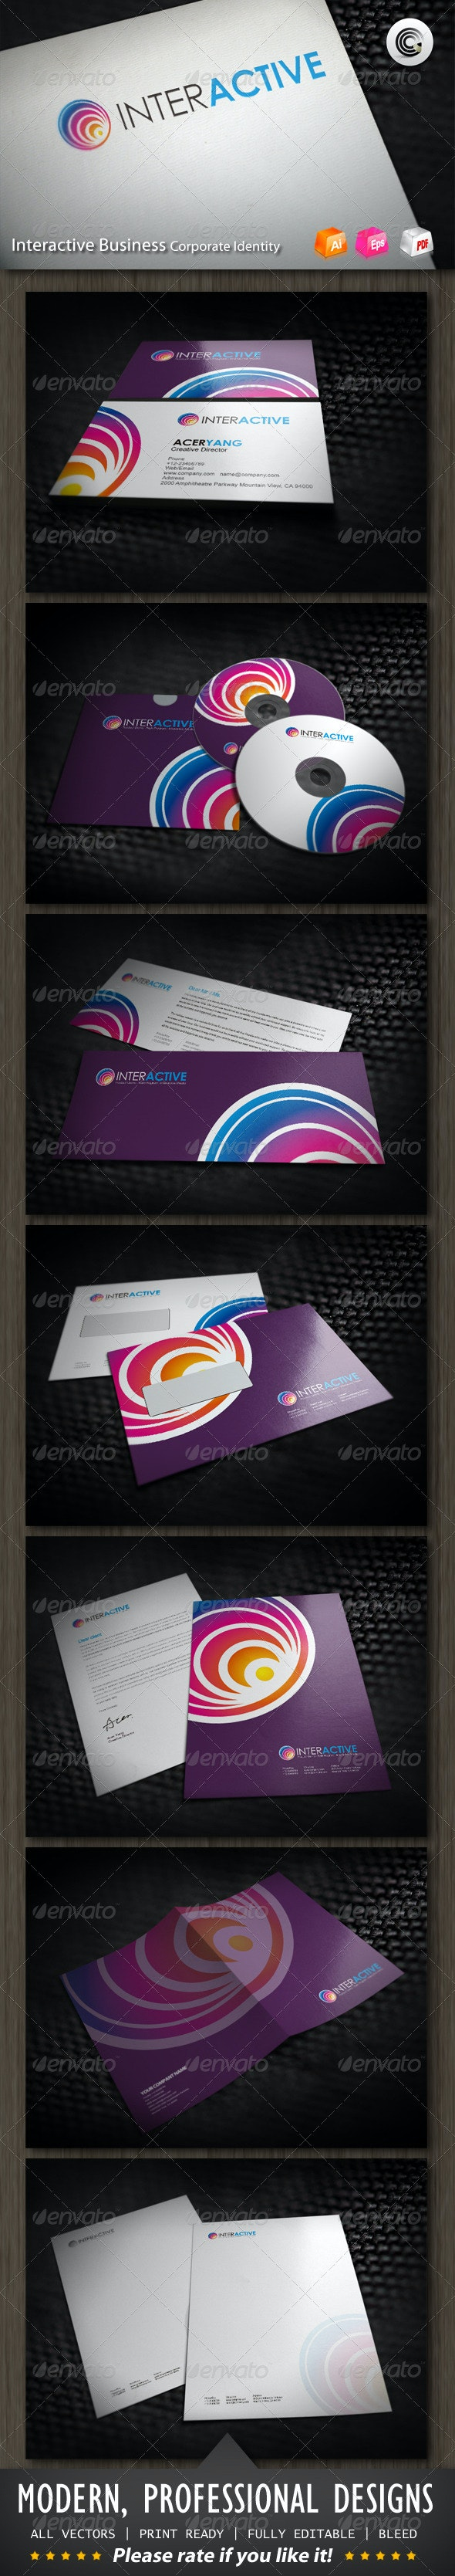 Interactive Media Business Corporate Identity - Stationery Print Templates